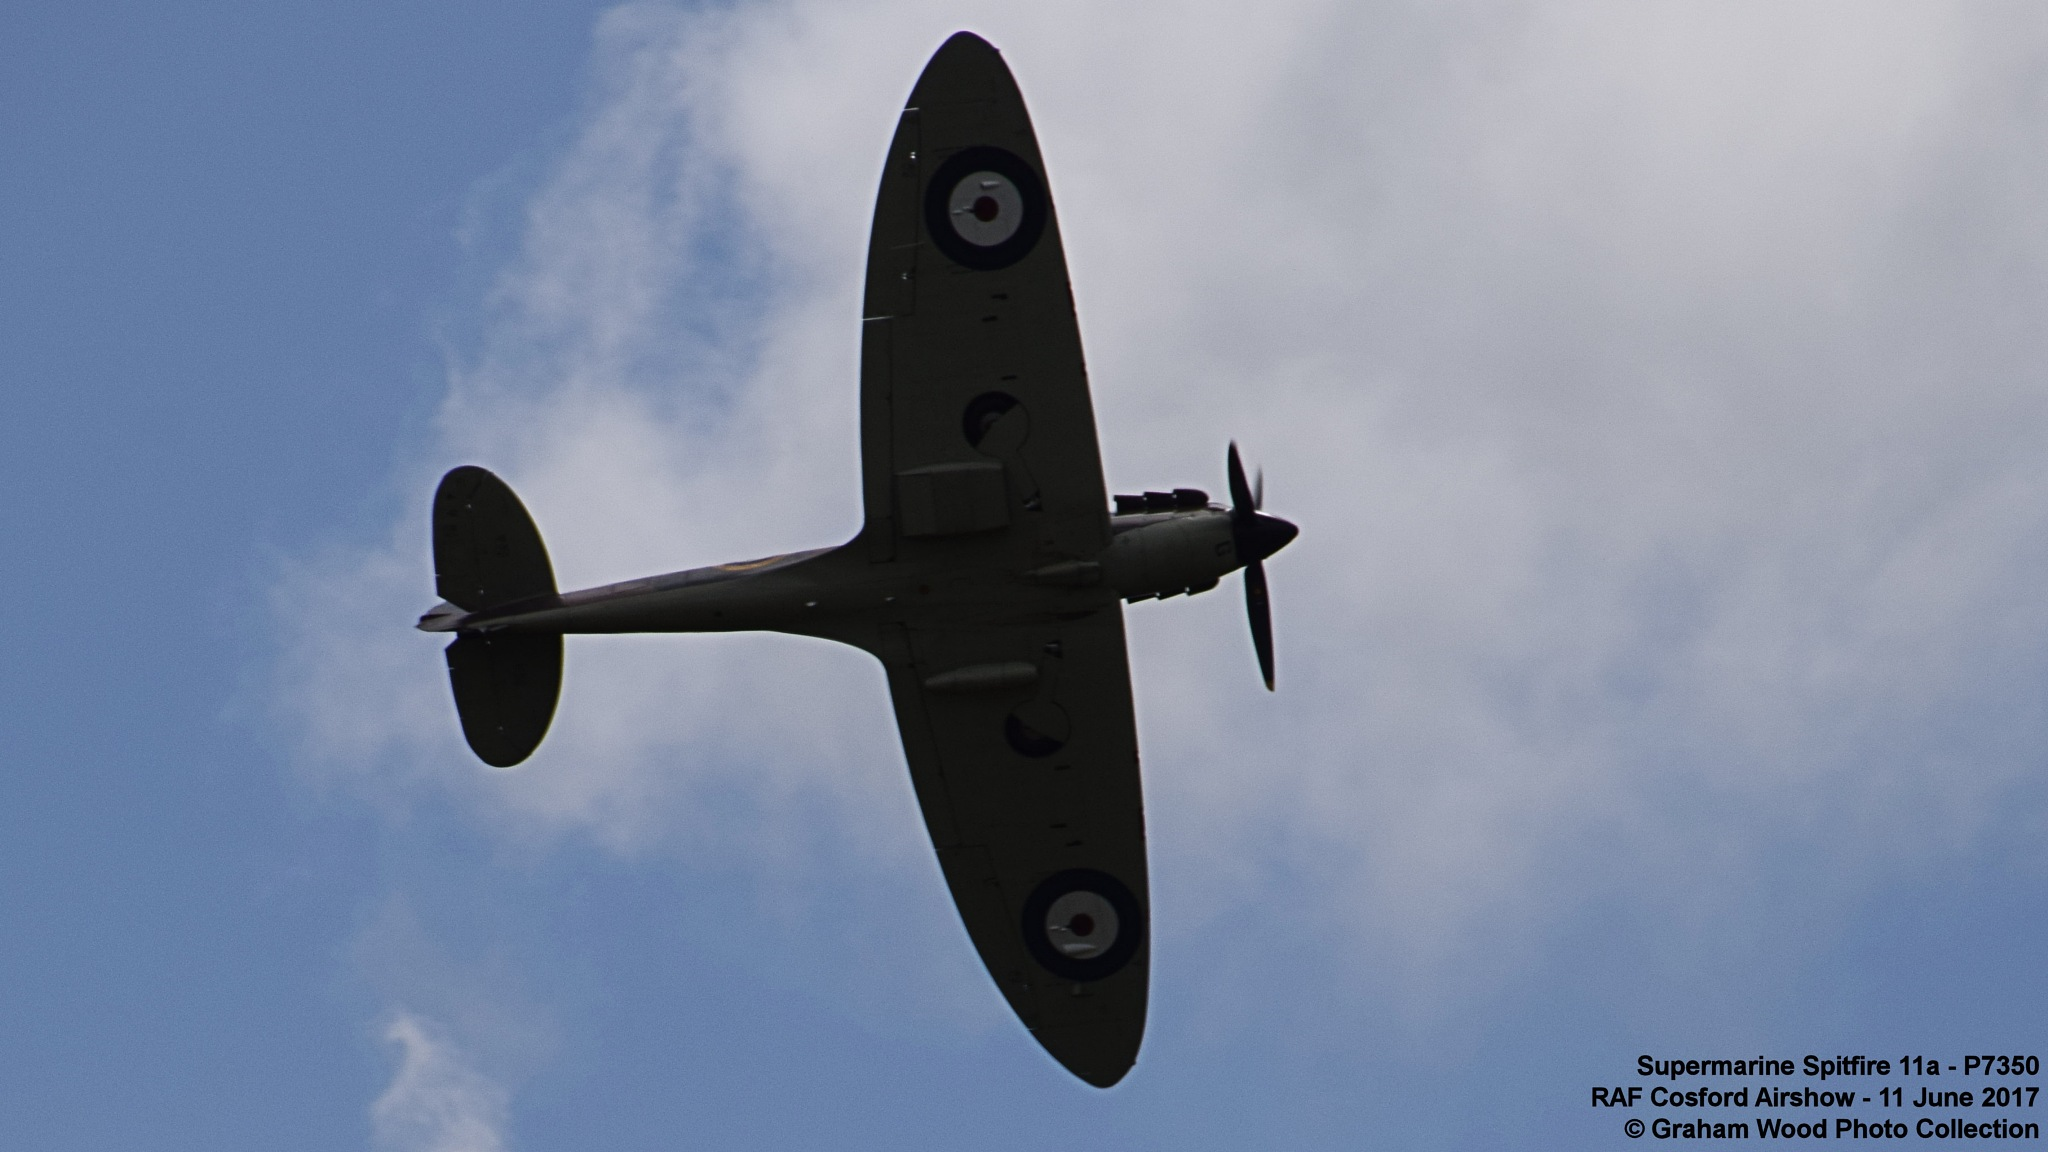 Supermarine Spitfire 11a - P7350 by Graham Wood Photo Collection